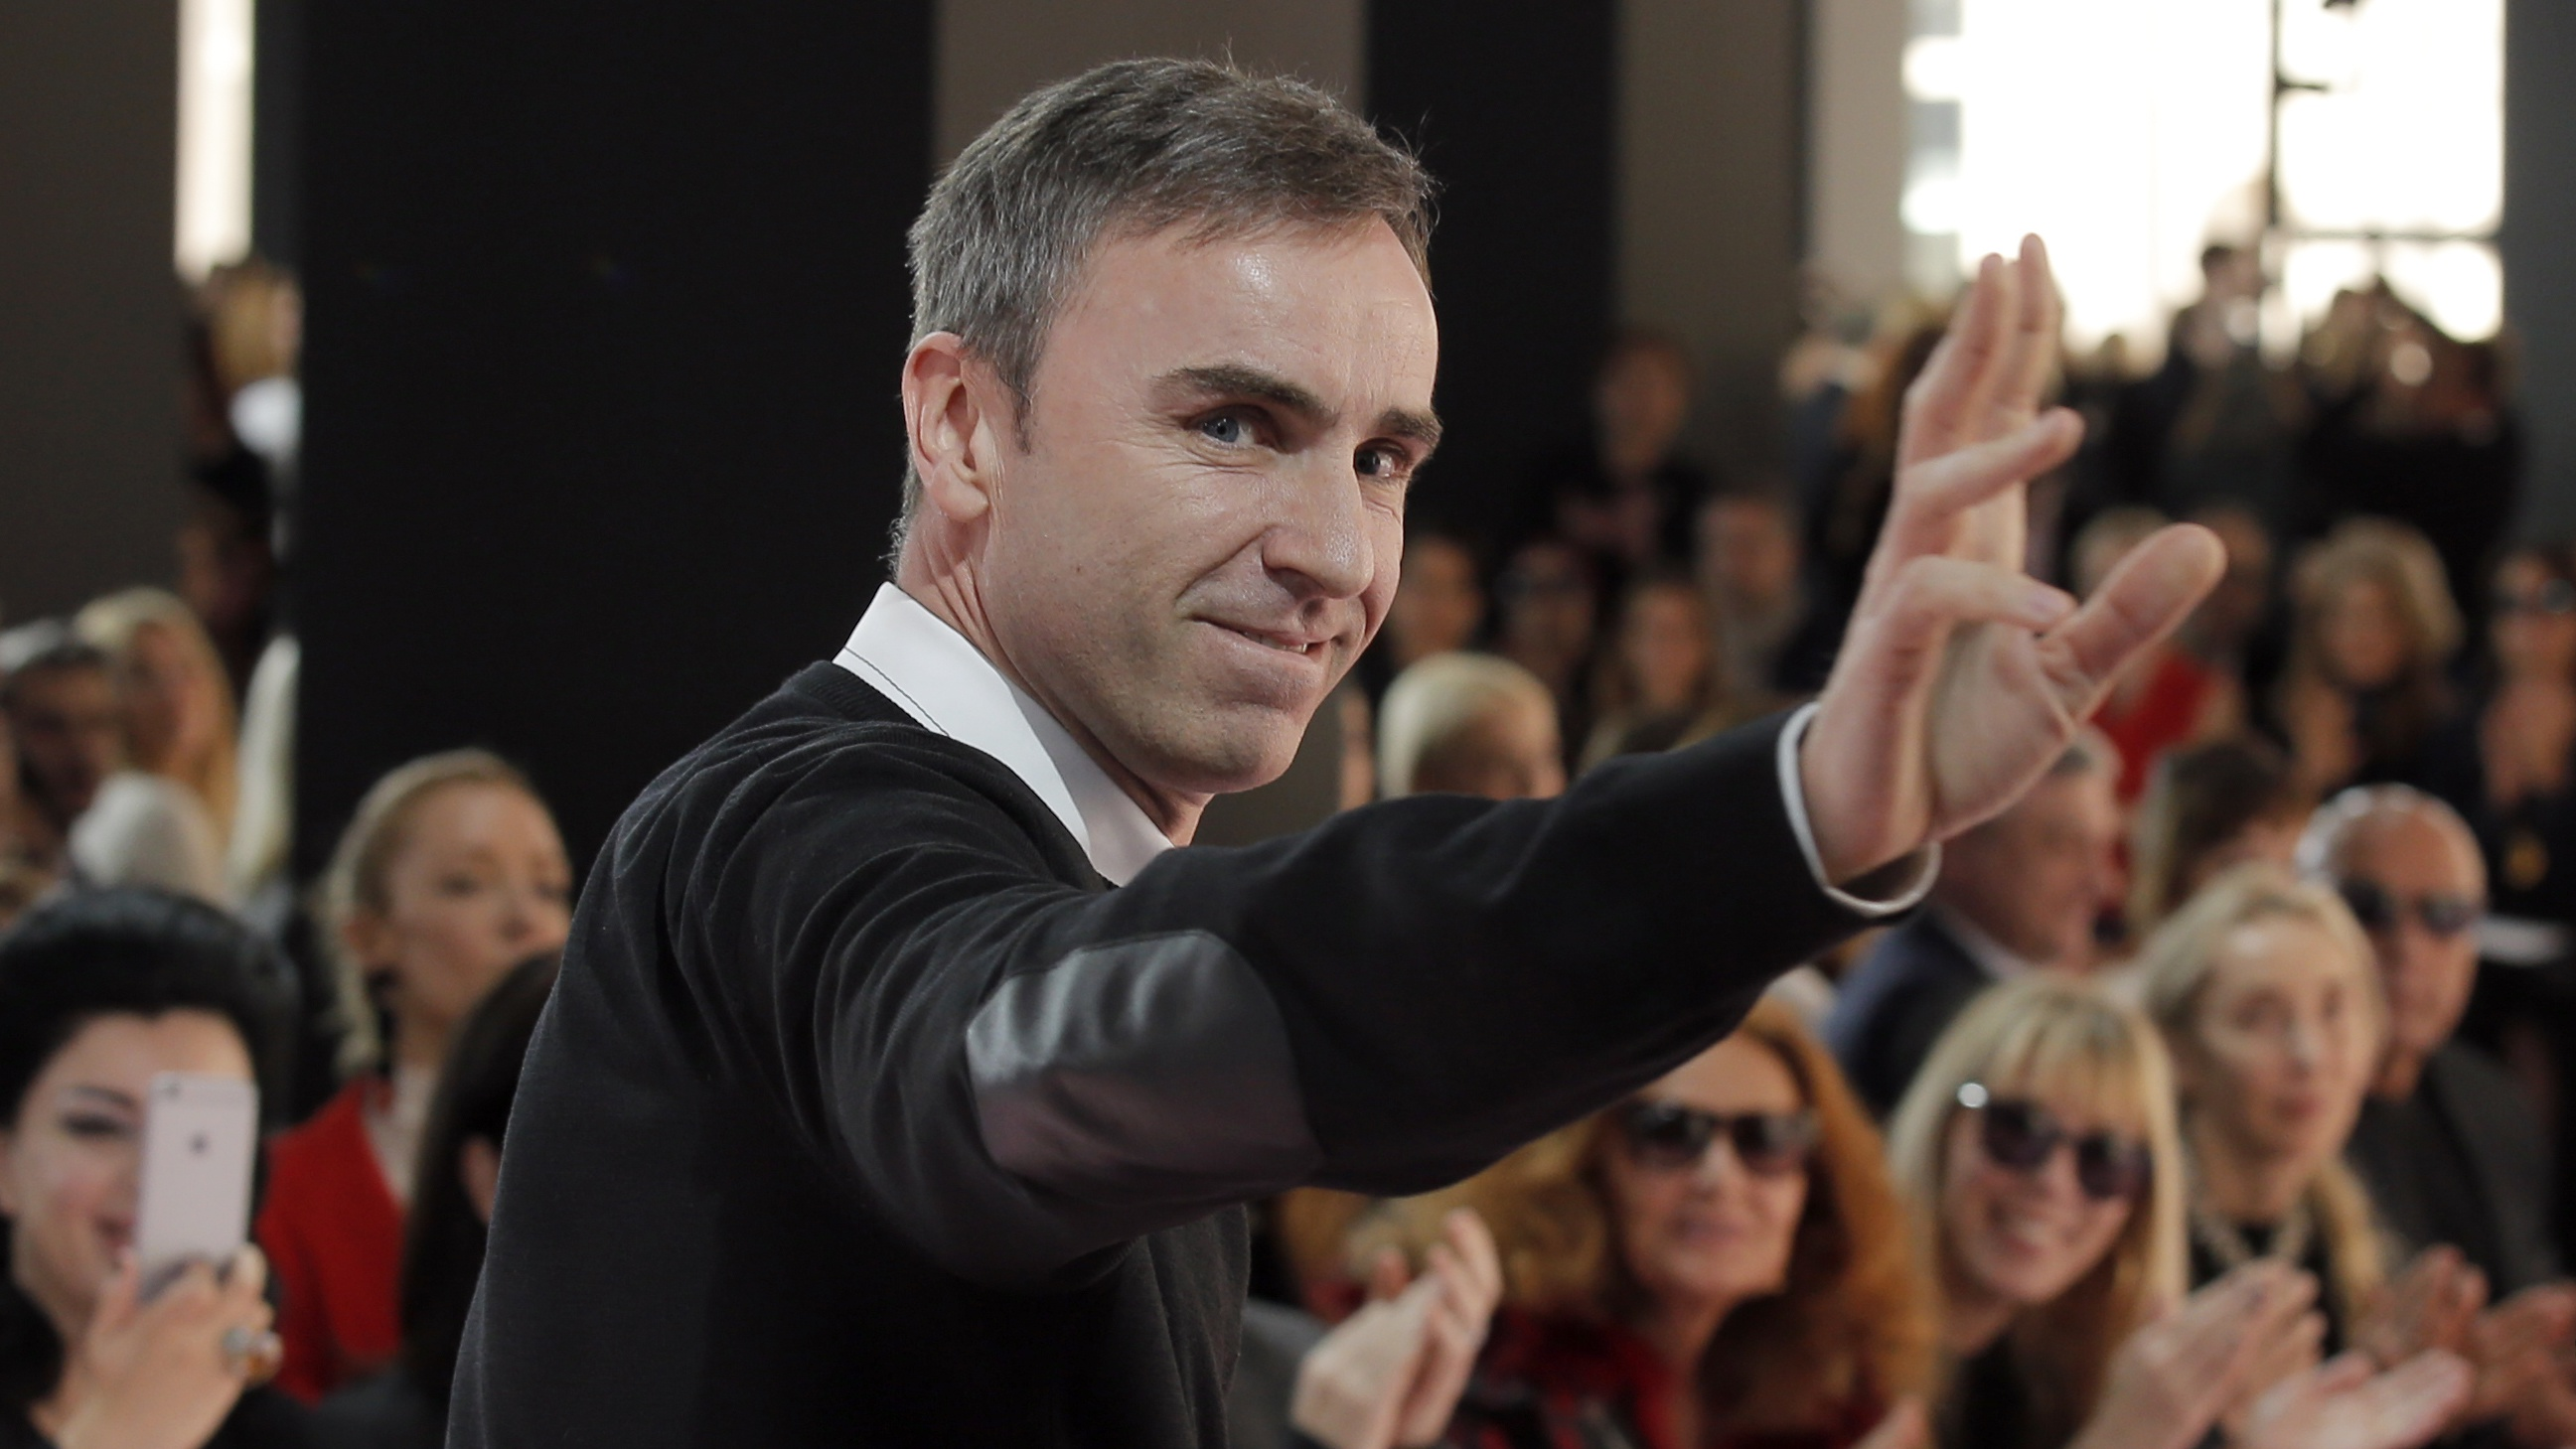 Belgian designer Raf Simons waves as he receives applause at the end of Christian Dior's ready to wear fall-winter 2015-2016 fashion collection, as part of Paris Fashion week, presented in Paris, France, Friday, March 6, 2015.